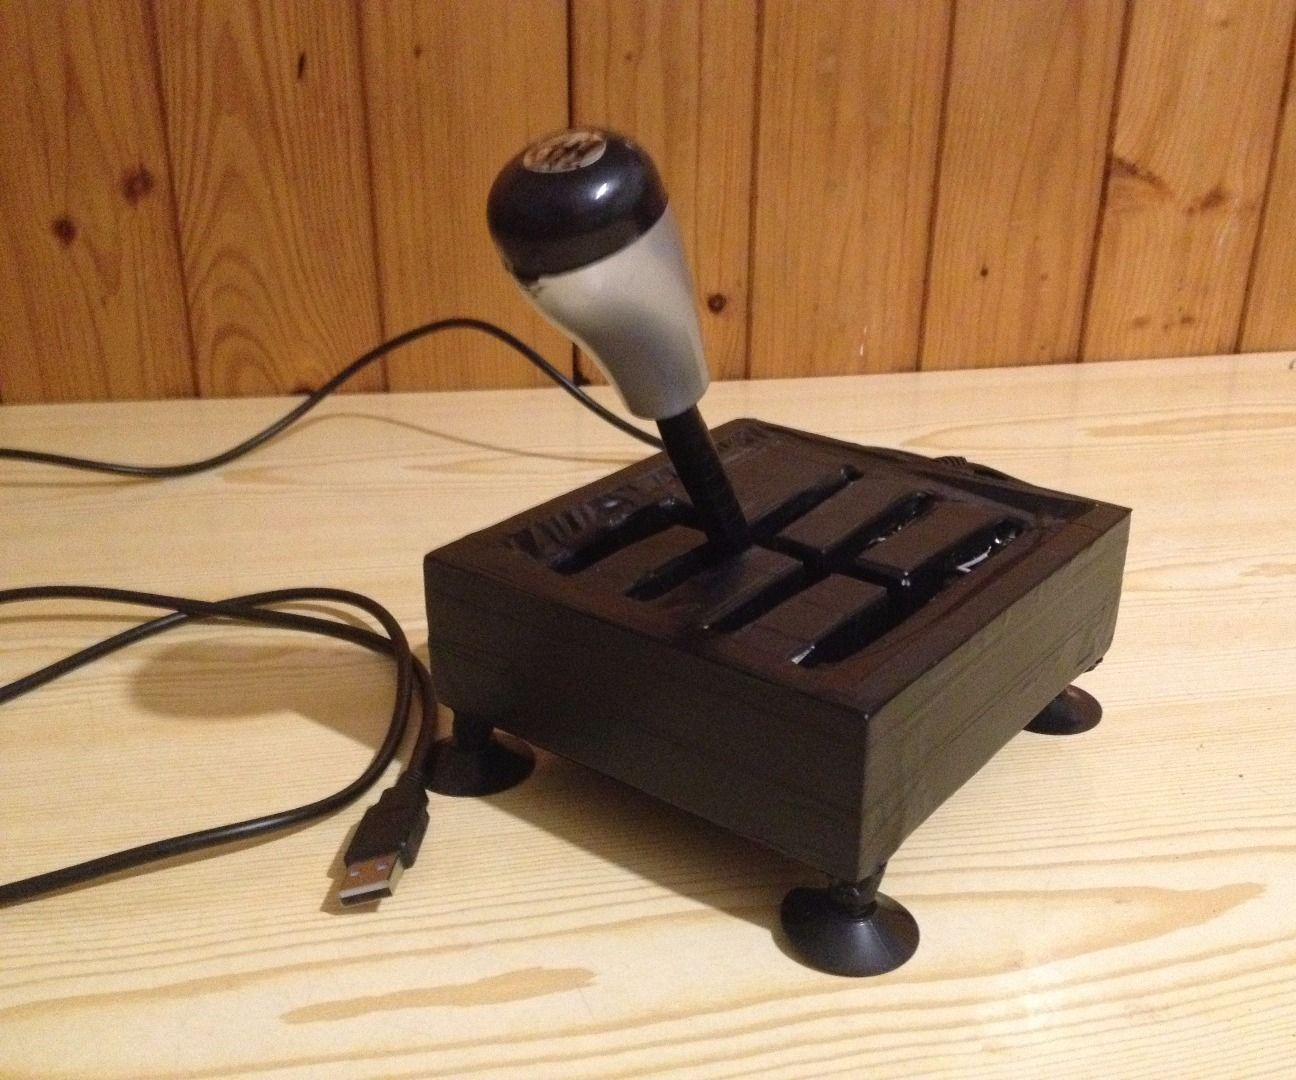 Gearbox for Computer,made From Old Joystick ( H-shifter ): 8